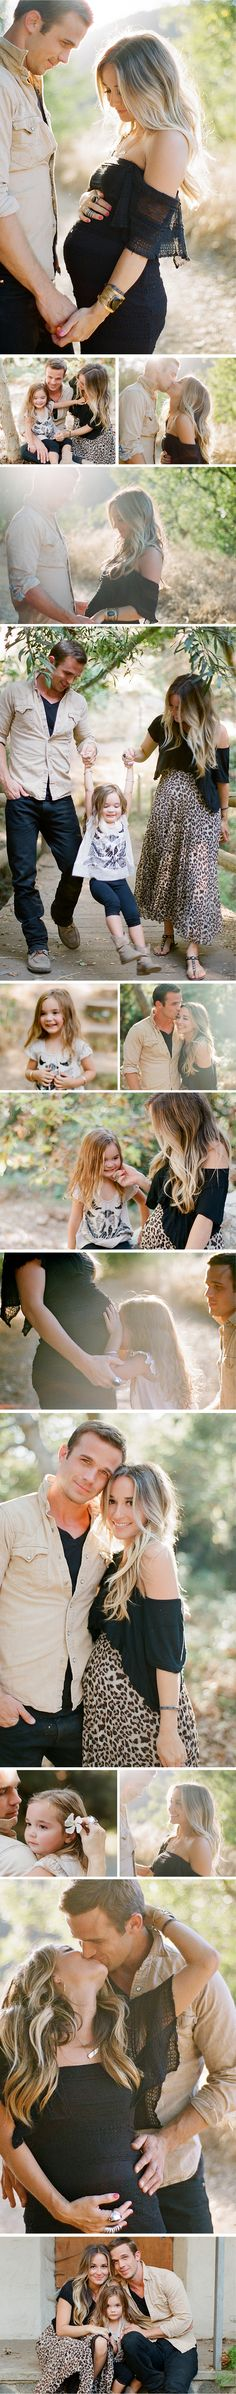 Beautiful maternity and family pictures. Love love love love love!